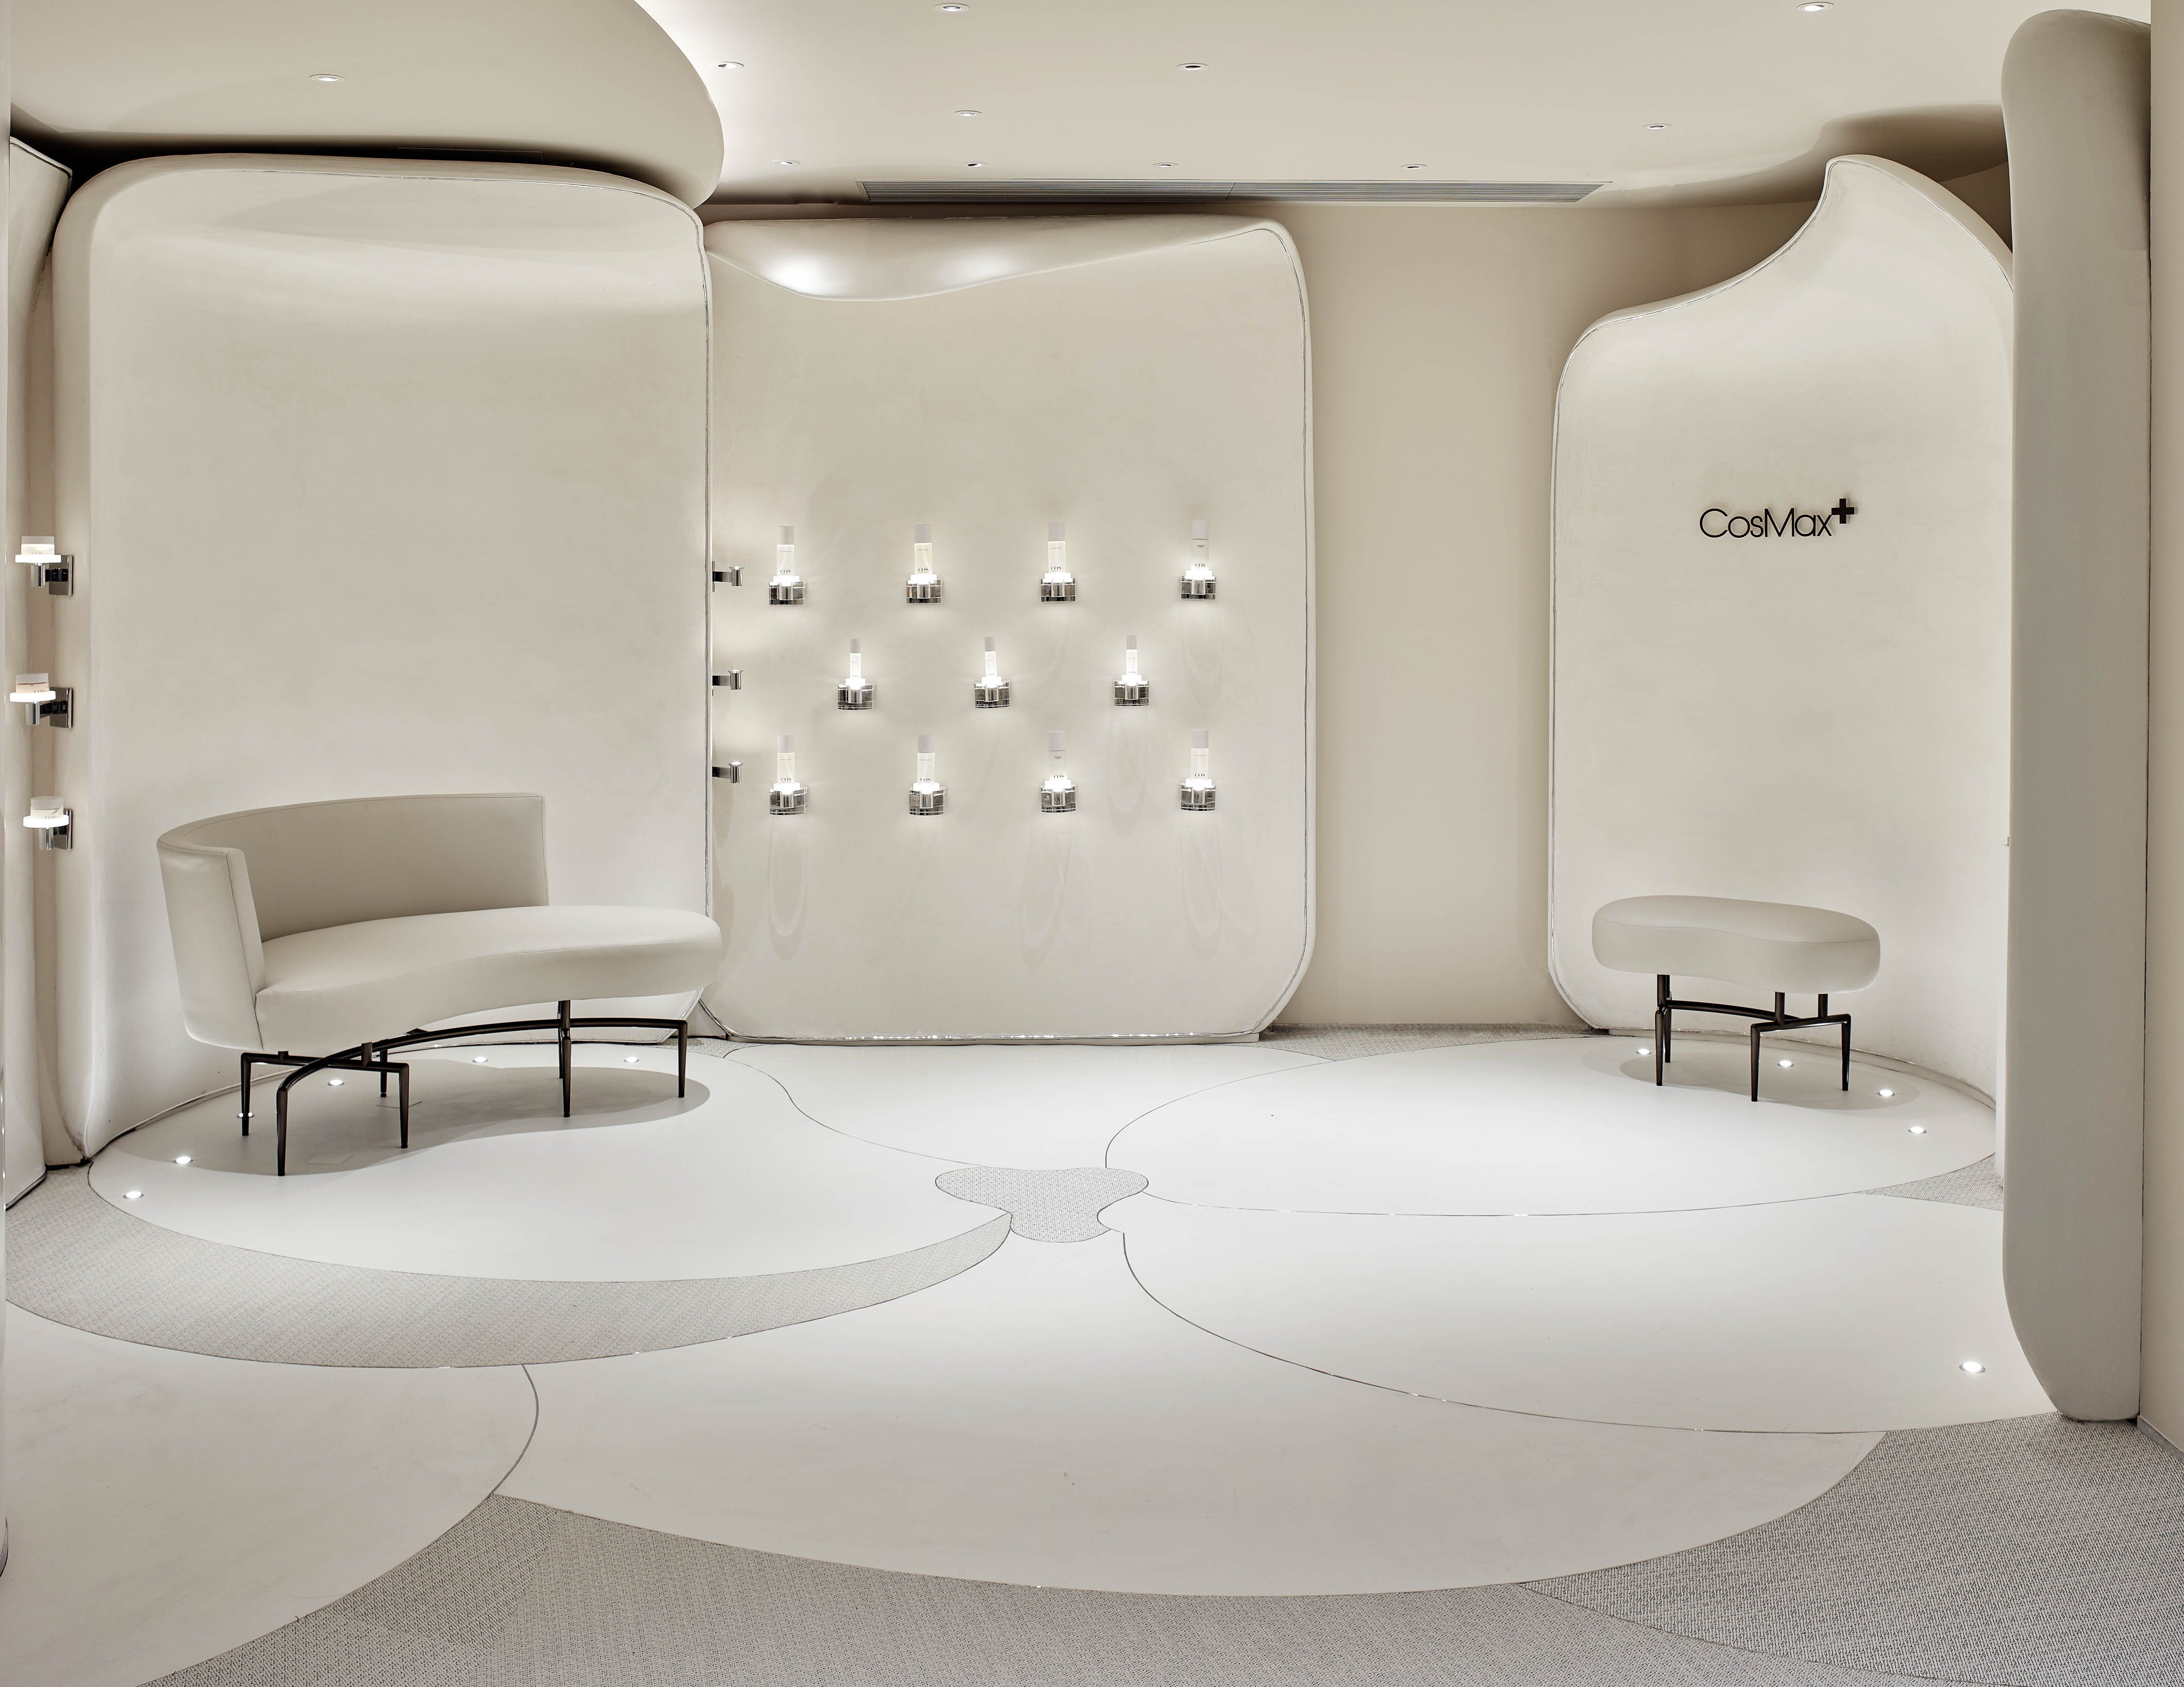 CosMax Medical Aesthetic Centre by BCD International Limited - The